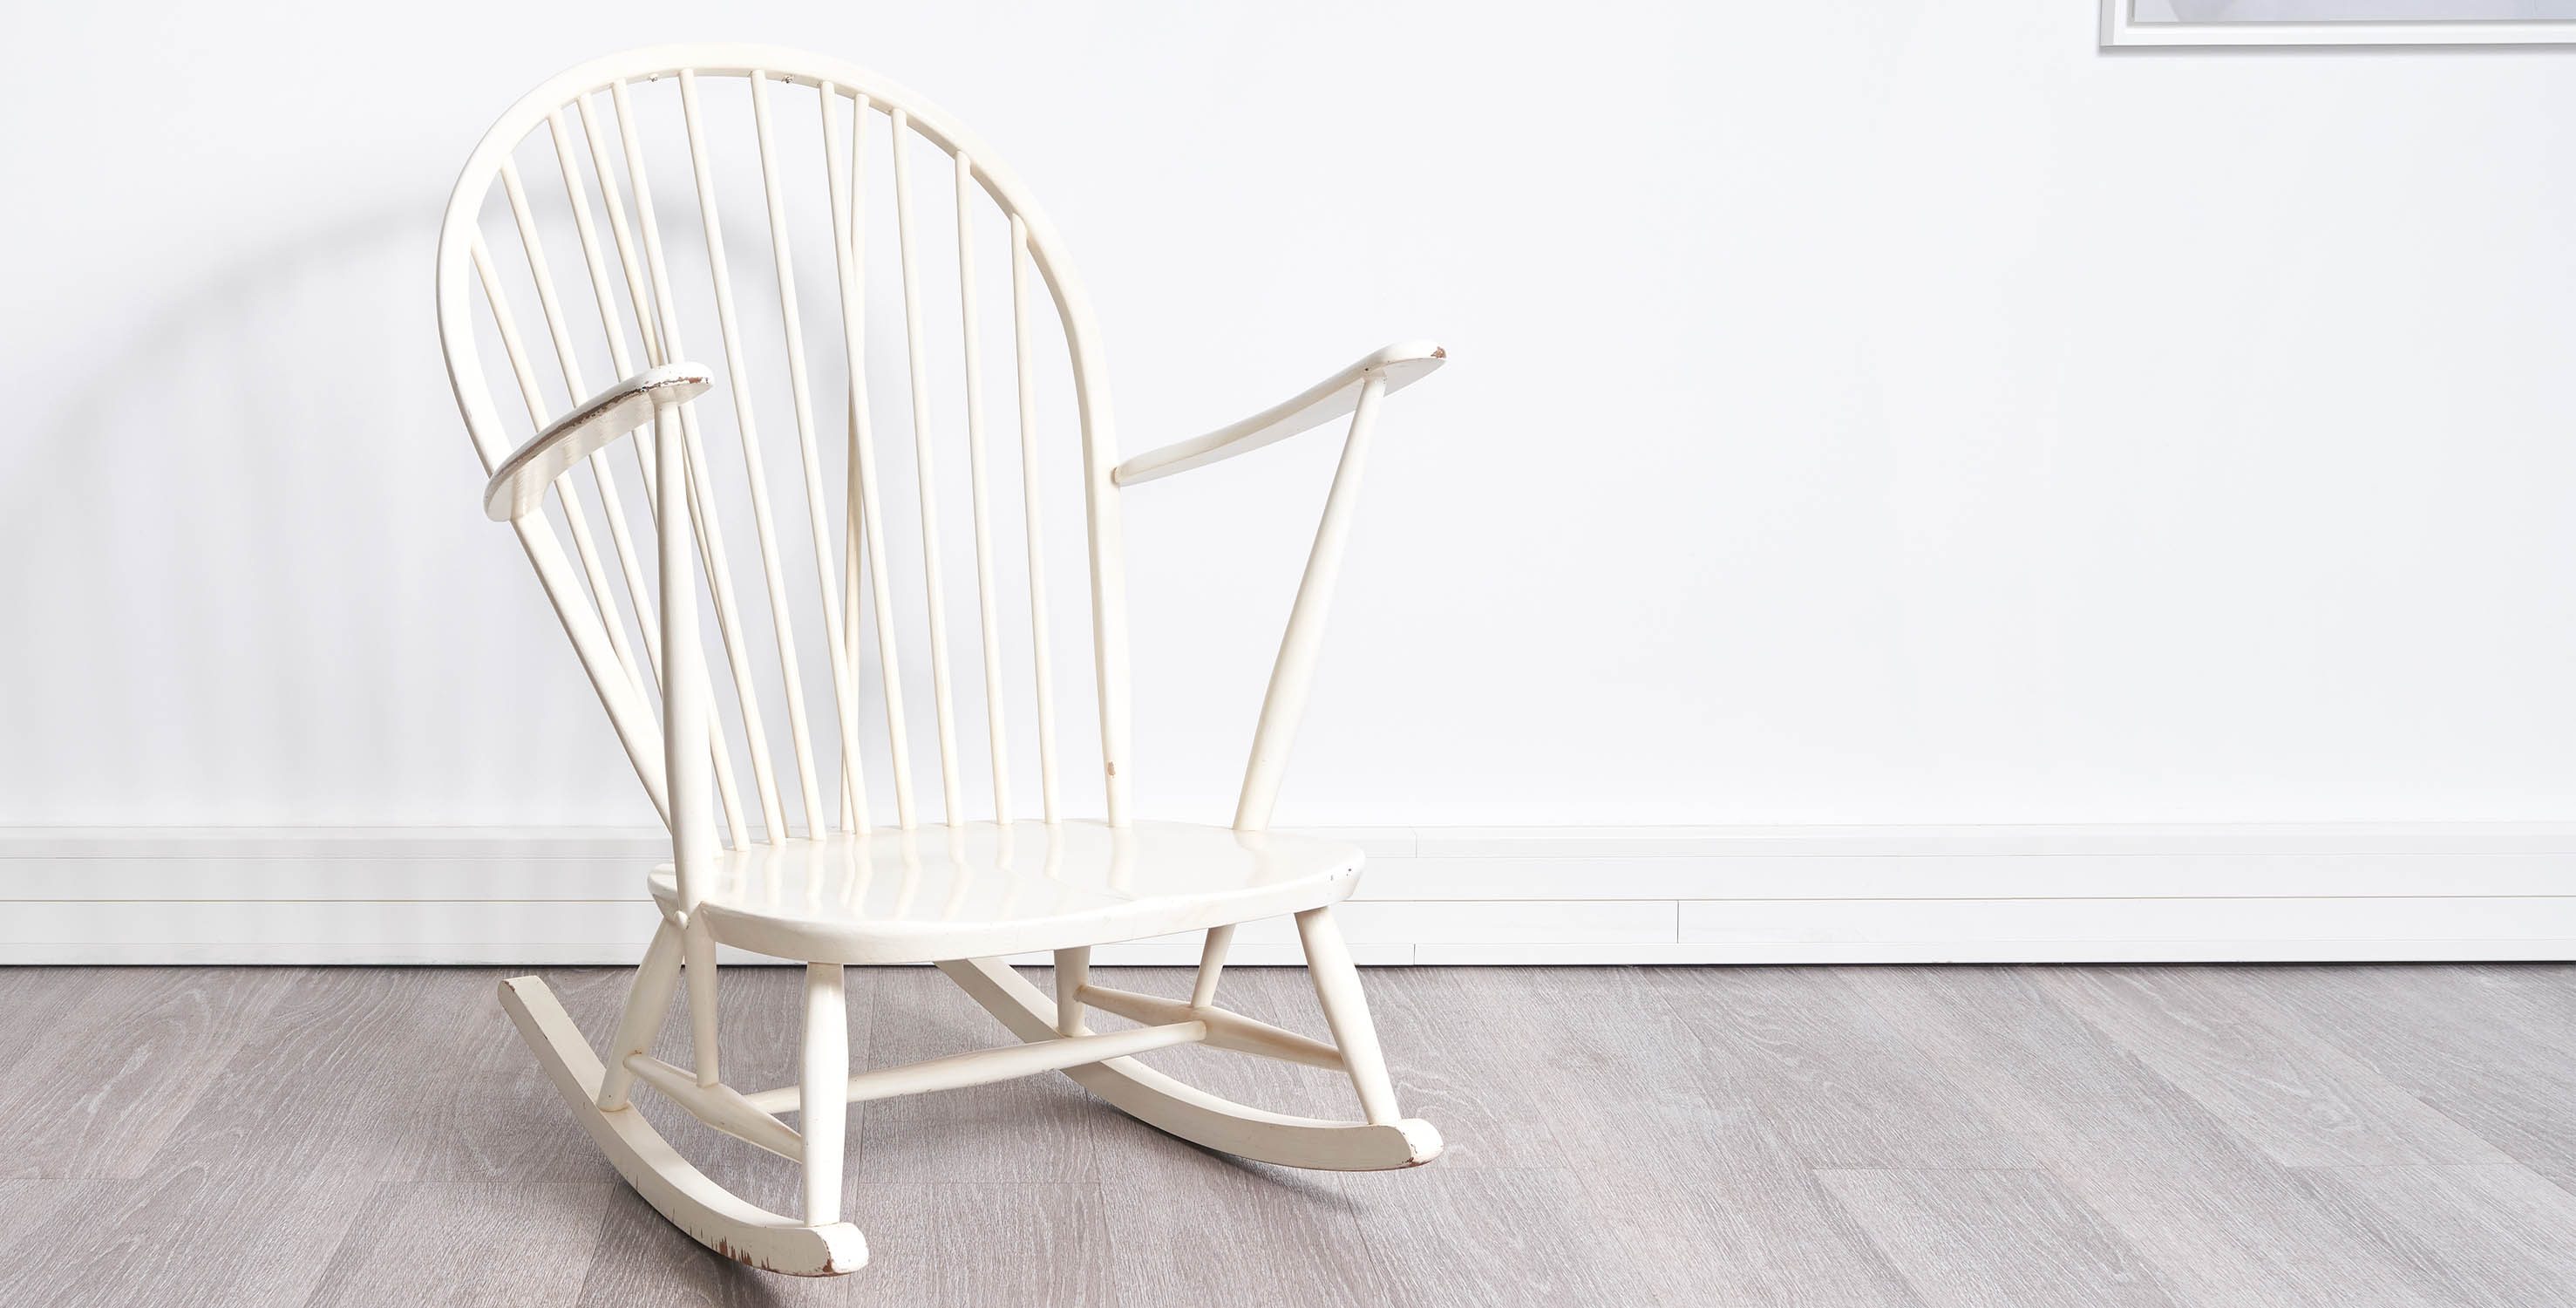 rocking chair vintage, rocking chair ercol, rocking chair, rocking chair blanc, vintage, mobilier vintage, room 30, ercol